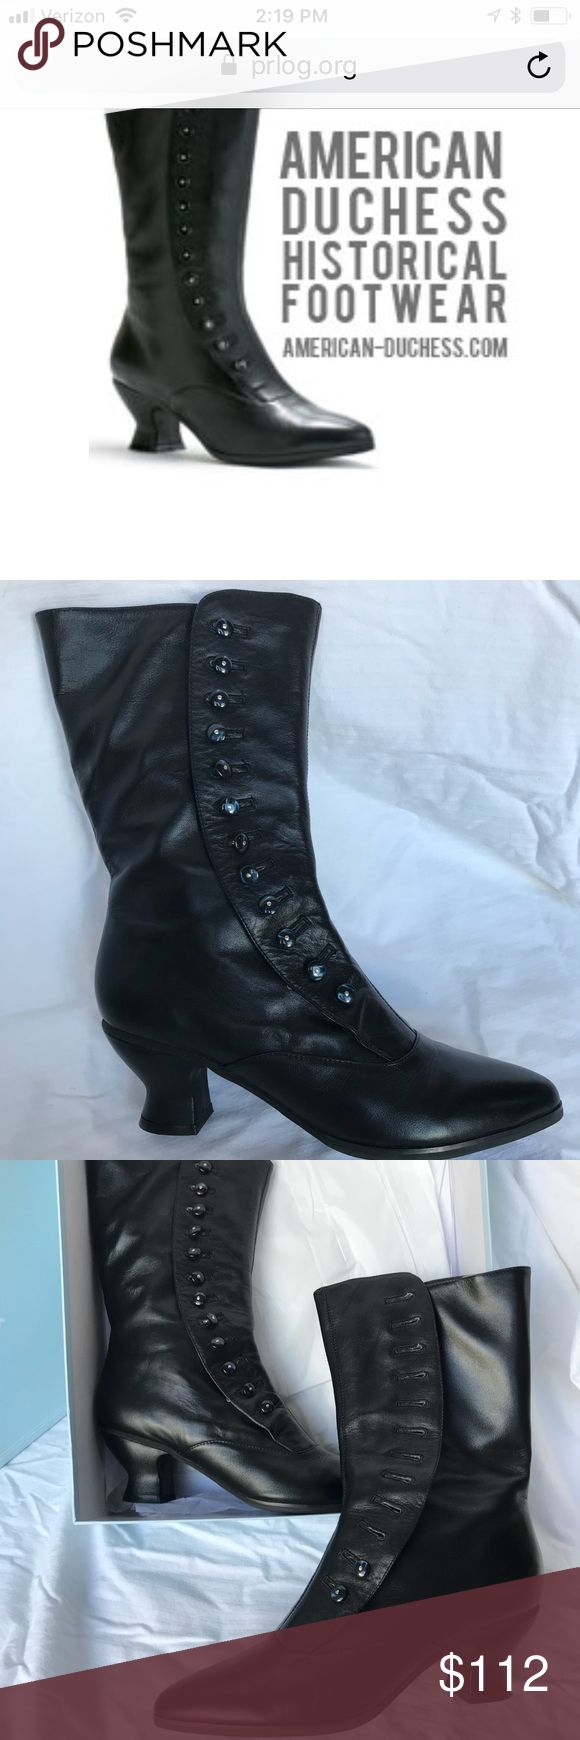 American Duchess Victorian boots, 9.5 wide calf! 'Tavistock' Victorian button boots, size 9.5 M. Rare wide-calf! Genuine black leather with man-made soles, fully leather lined. Features a discreet elastic panel on the inner calf for a snug fit. One of the beautiful dark blue buttons has come unsewn, but this can be easily repaired. Buttons can also be moved by your local shoe repair guru to create a custom fit. Original box and silver button hook included. Great for historical reproduction…